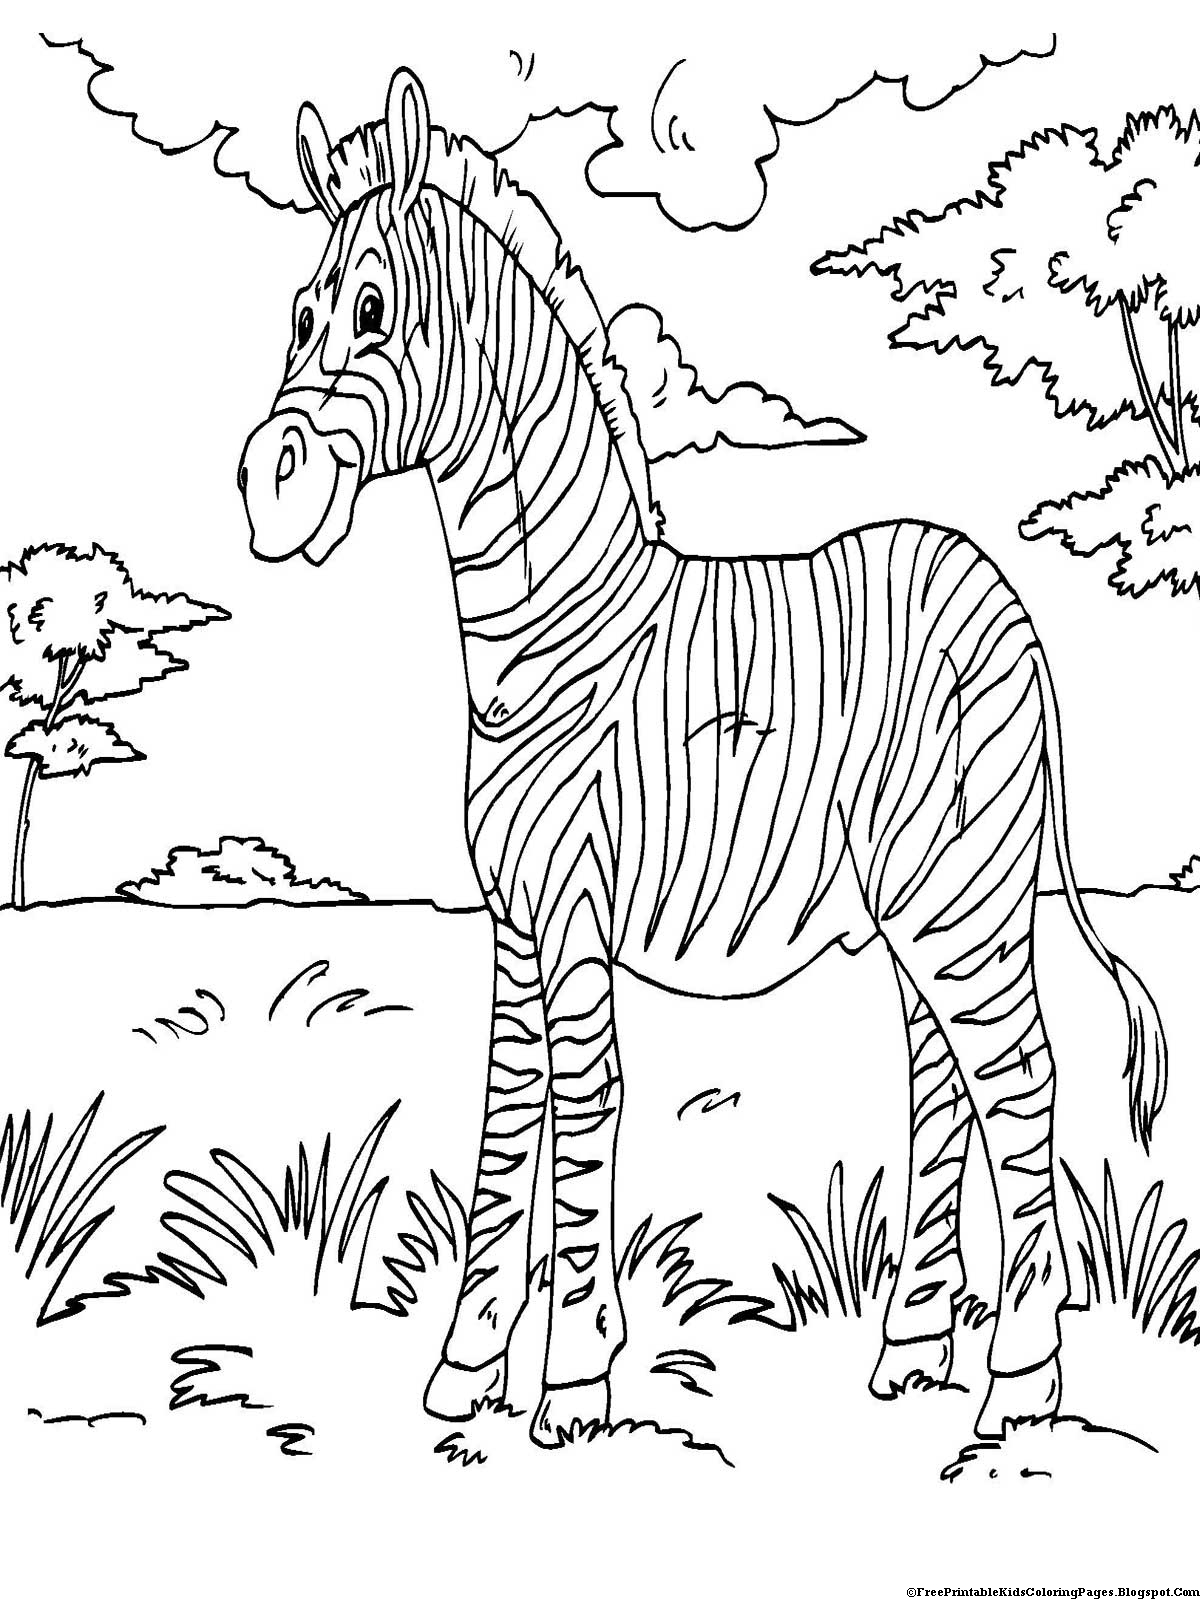 coloring images to print bunny coloring pages best coloring pages for kids print coloring to images